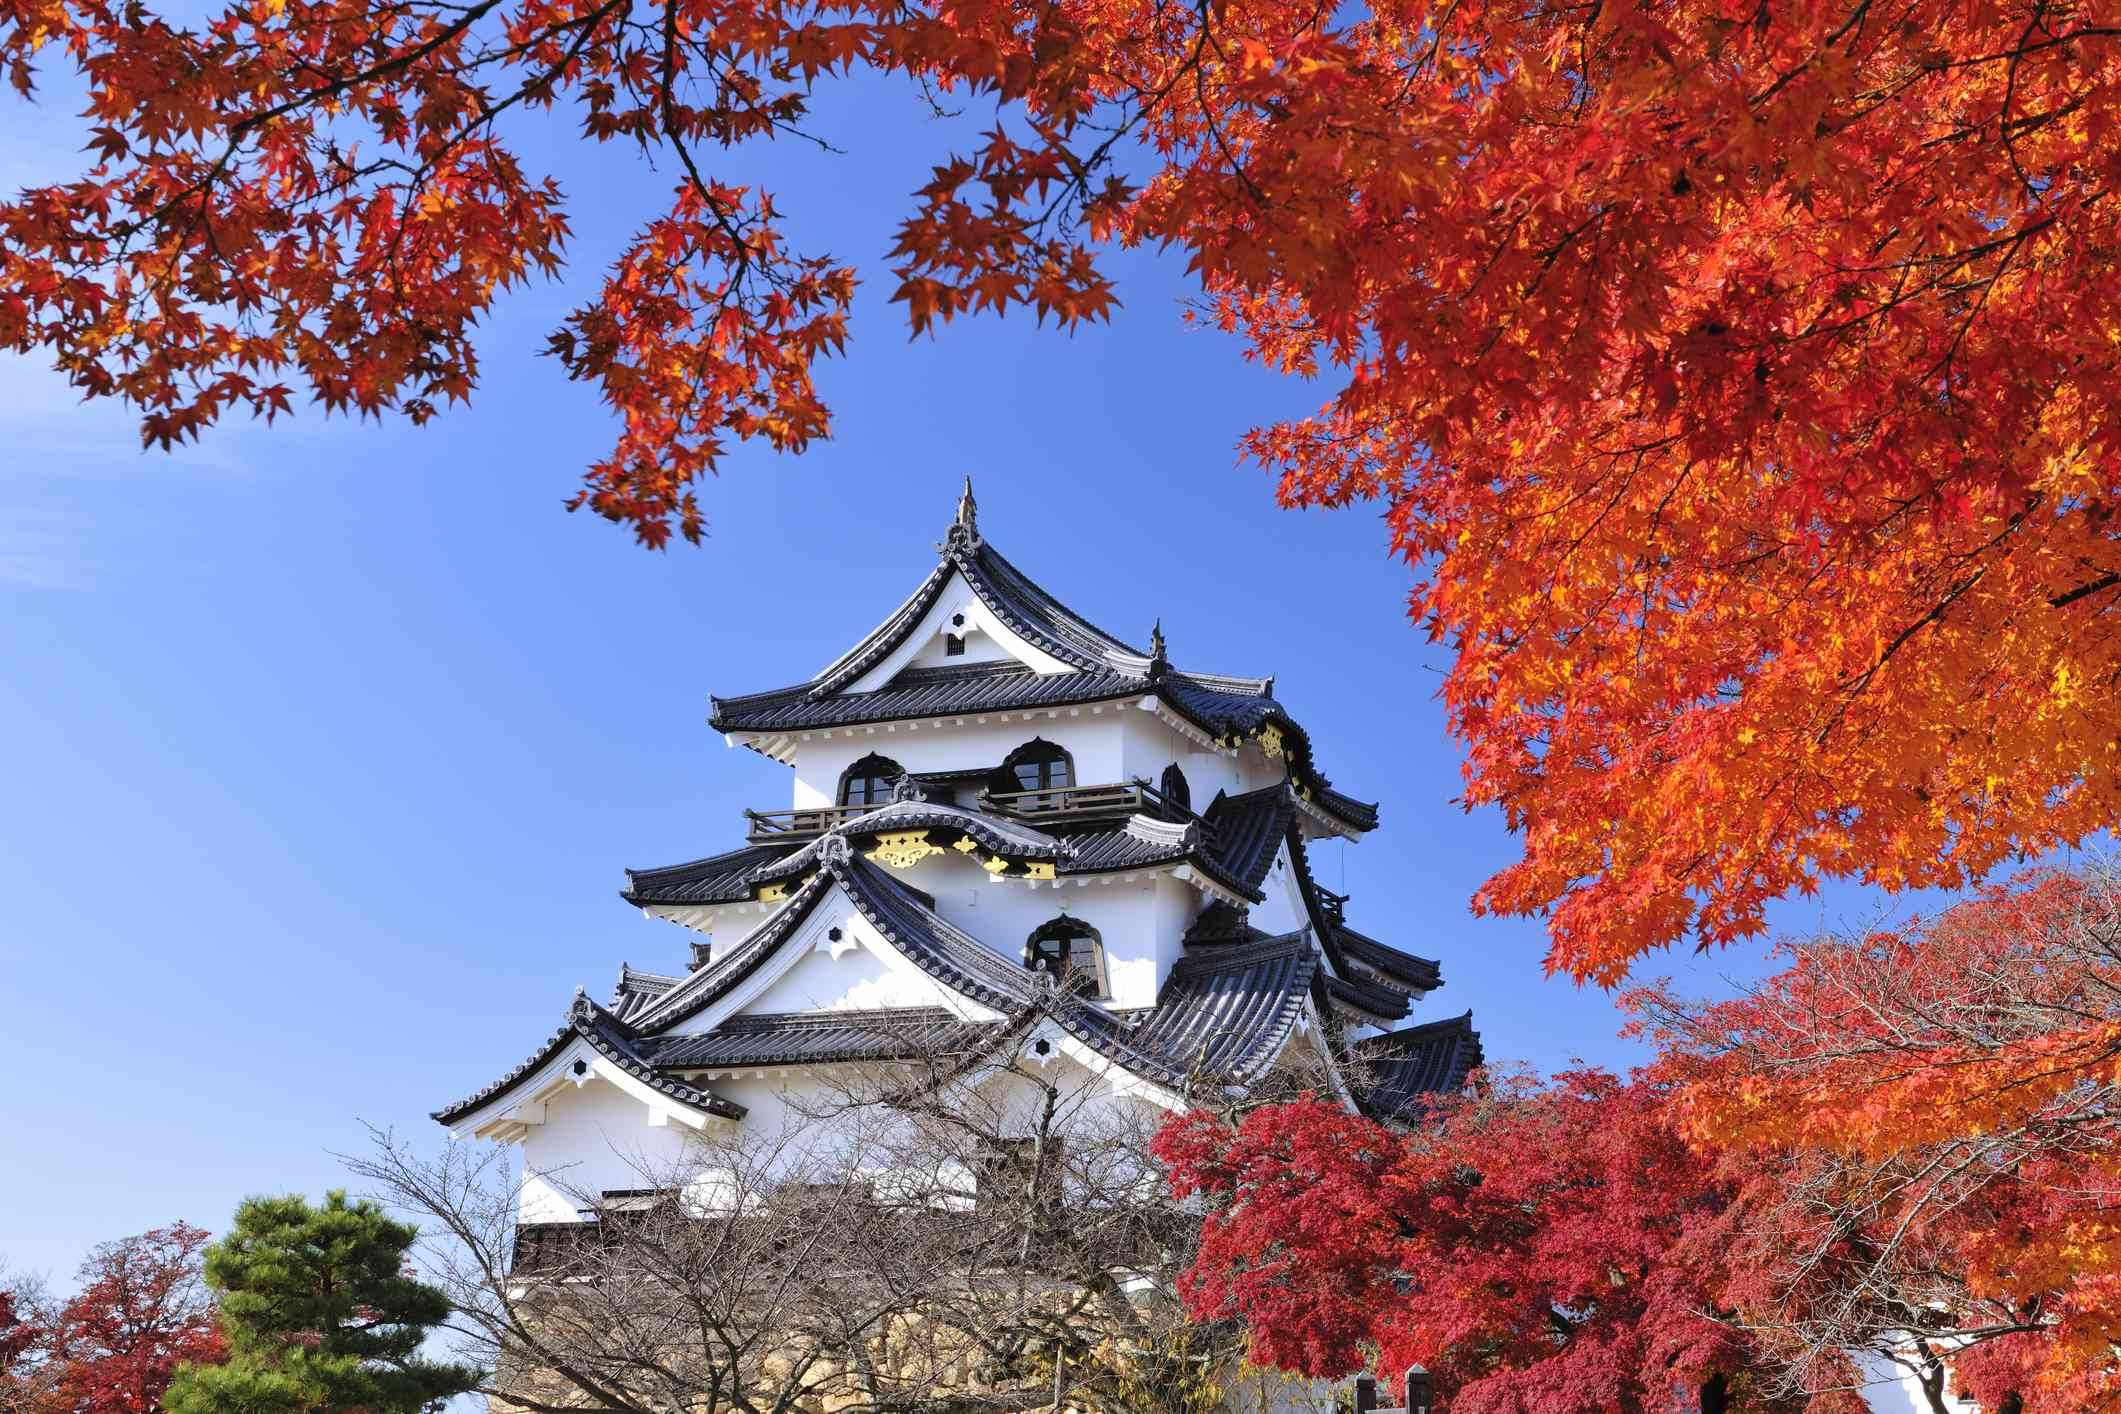 main tower of Hikone castle with red maple trees in the foreground